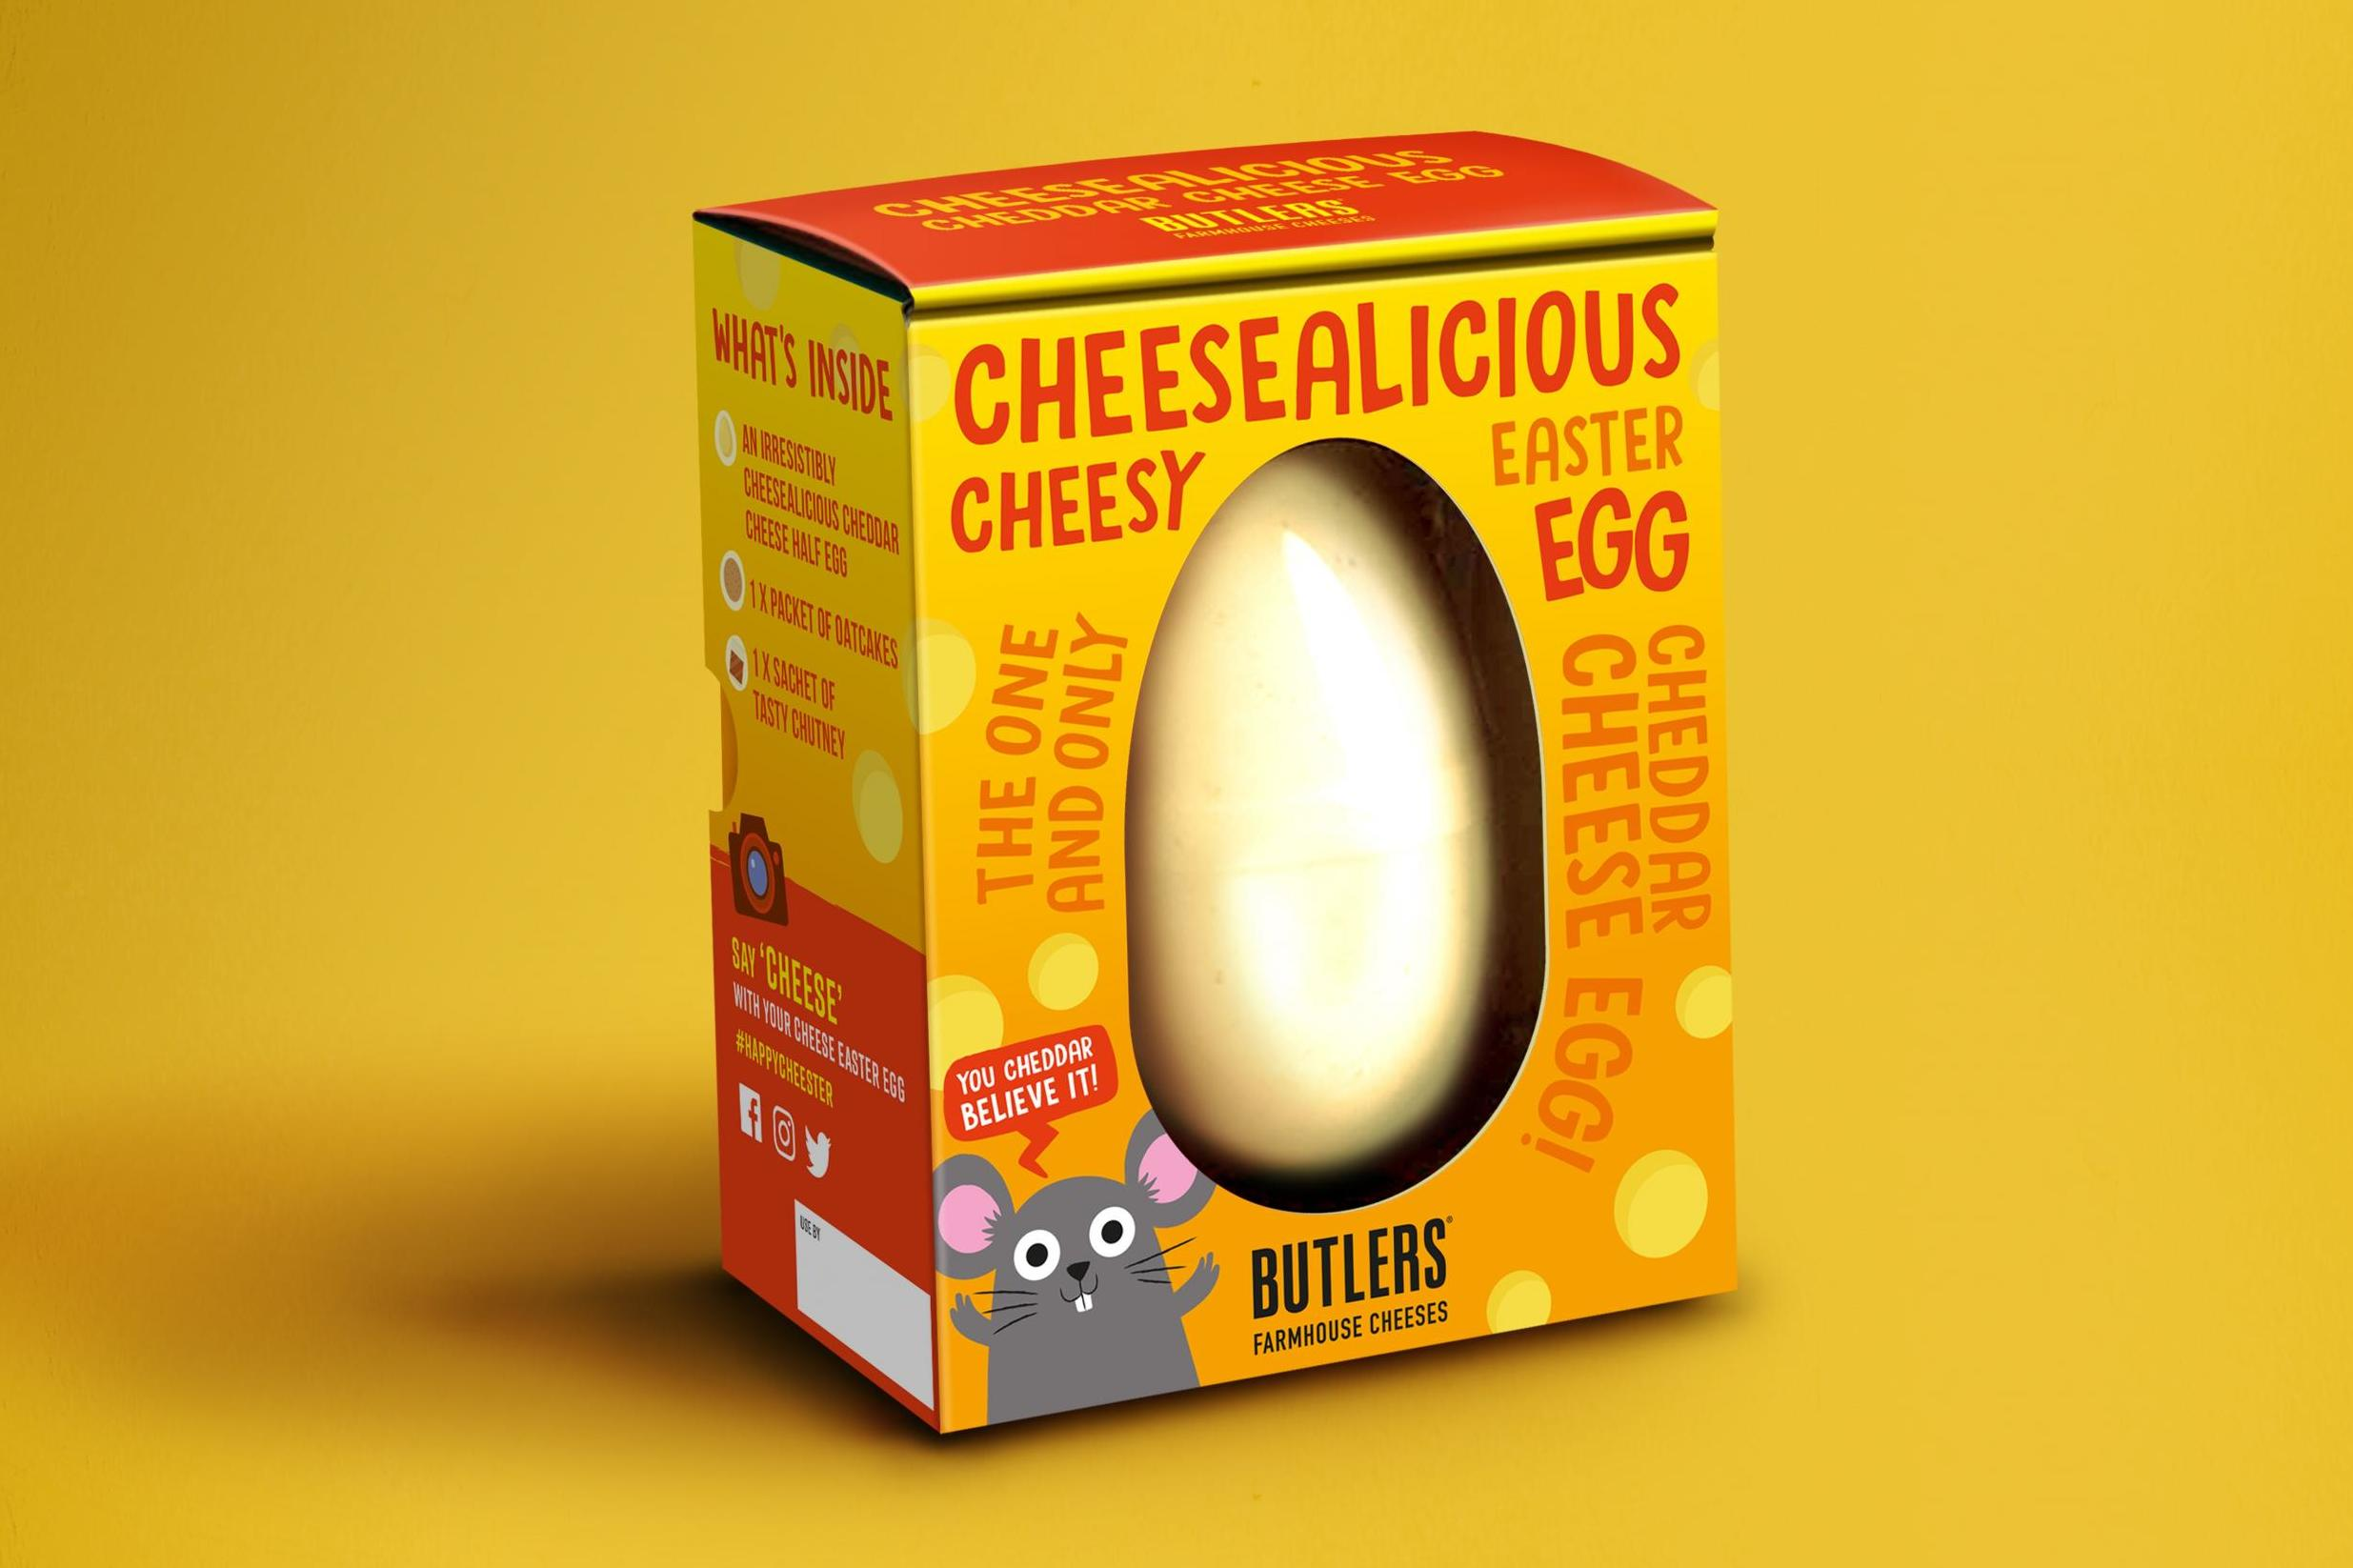 Sainsbury's unveils Easter egg made entirely from cheese 1